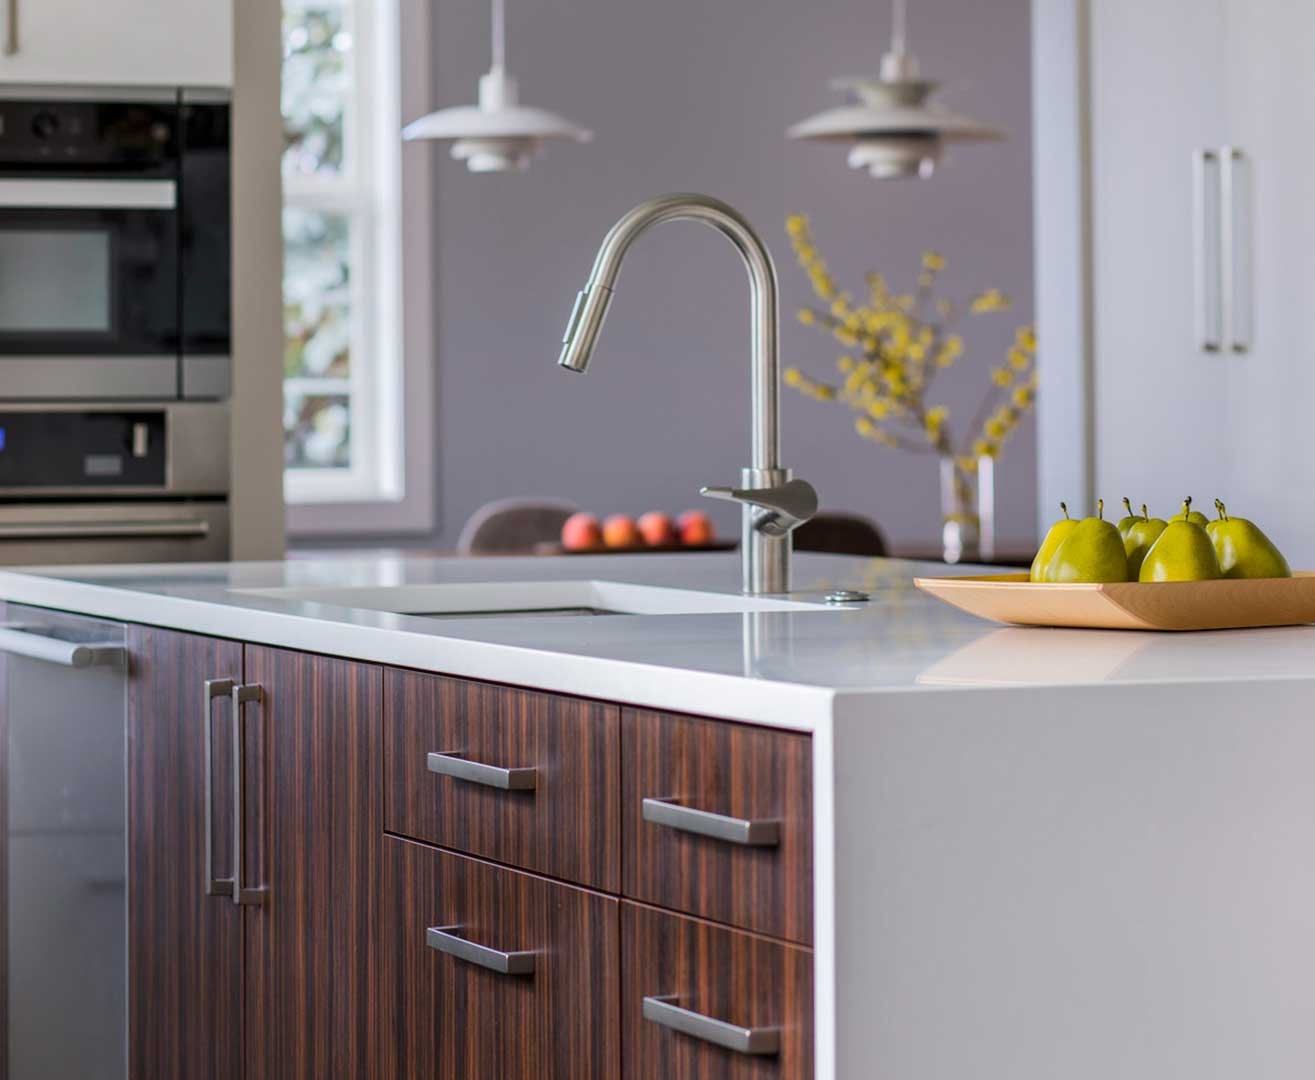 Remodeled kitchen island with gooseneck faucet